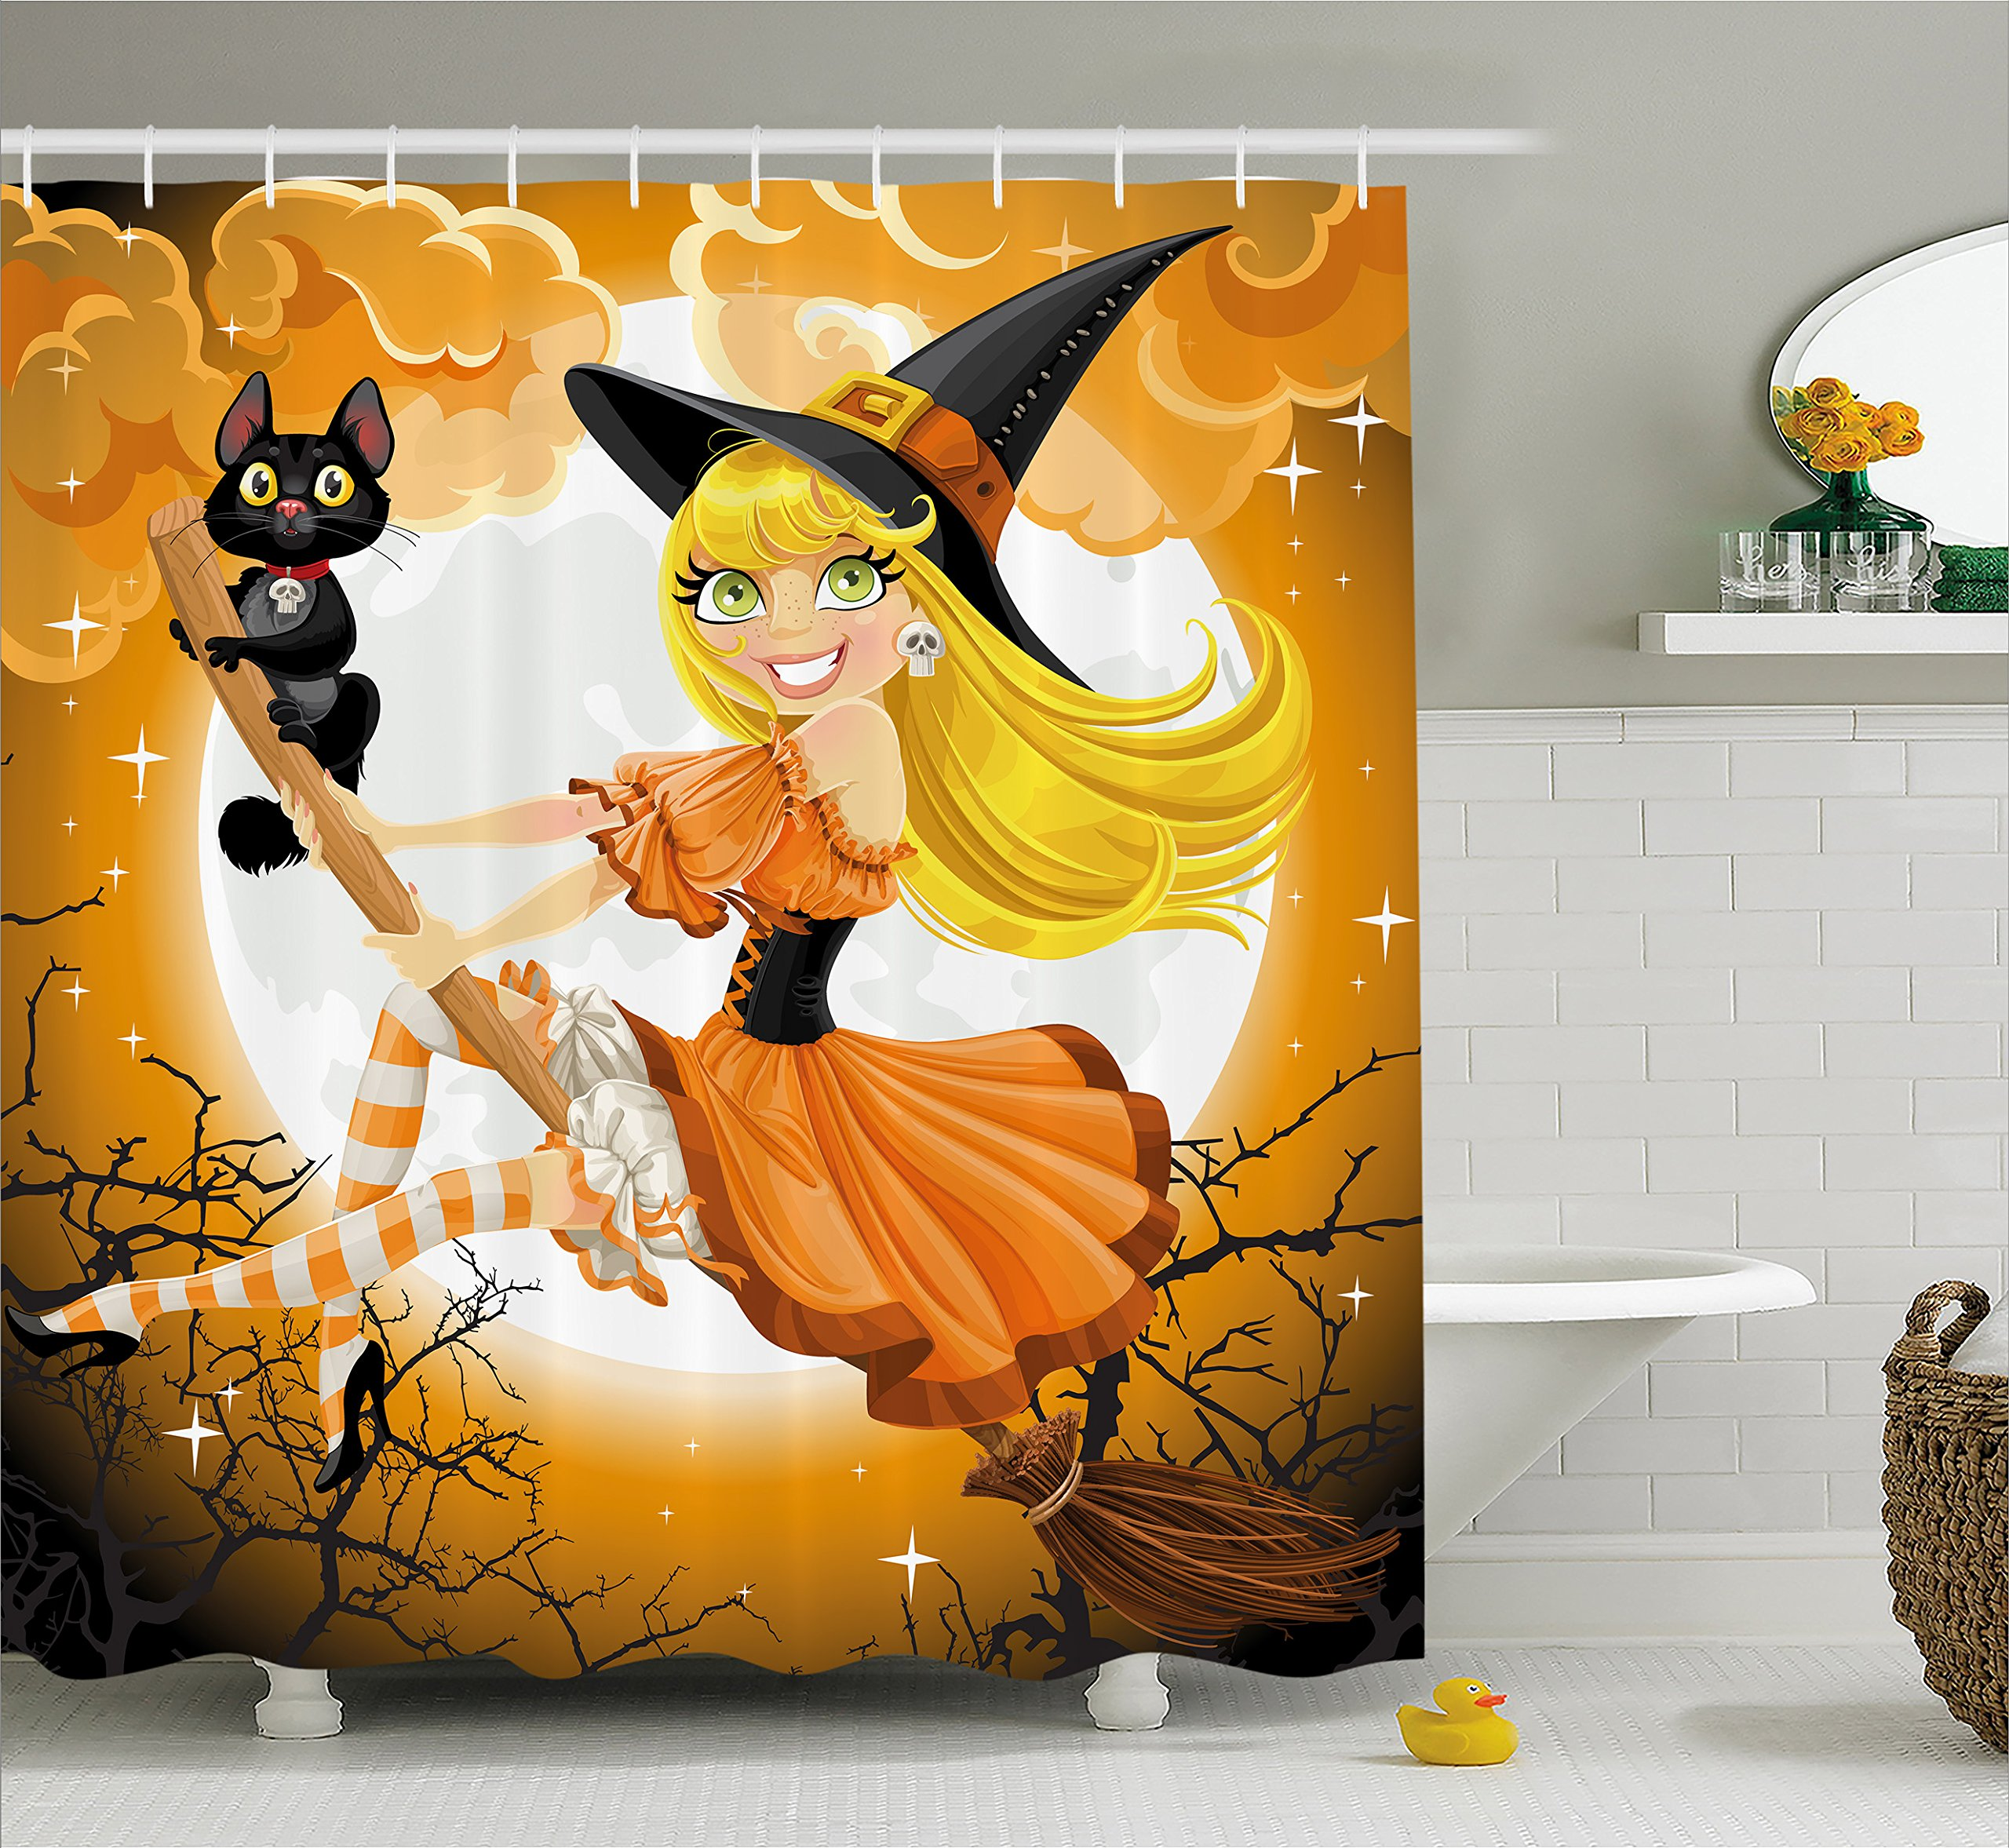 """Ambesonne Halloween Shower Curtain, Witch on a Broom with Baby Kitten and Hazy Moonlight Halloween Themed Colors, Cloth Fabric Bathroom Decor Set with Hooks, 70"""" Long, Yellow Orange"""